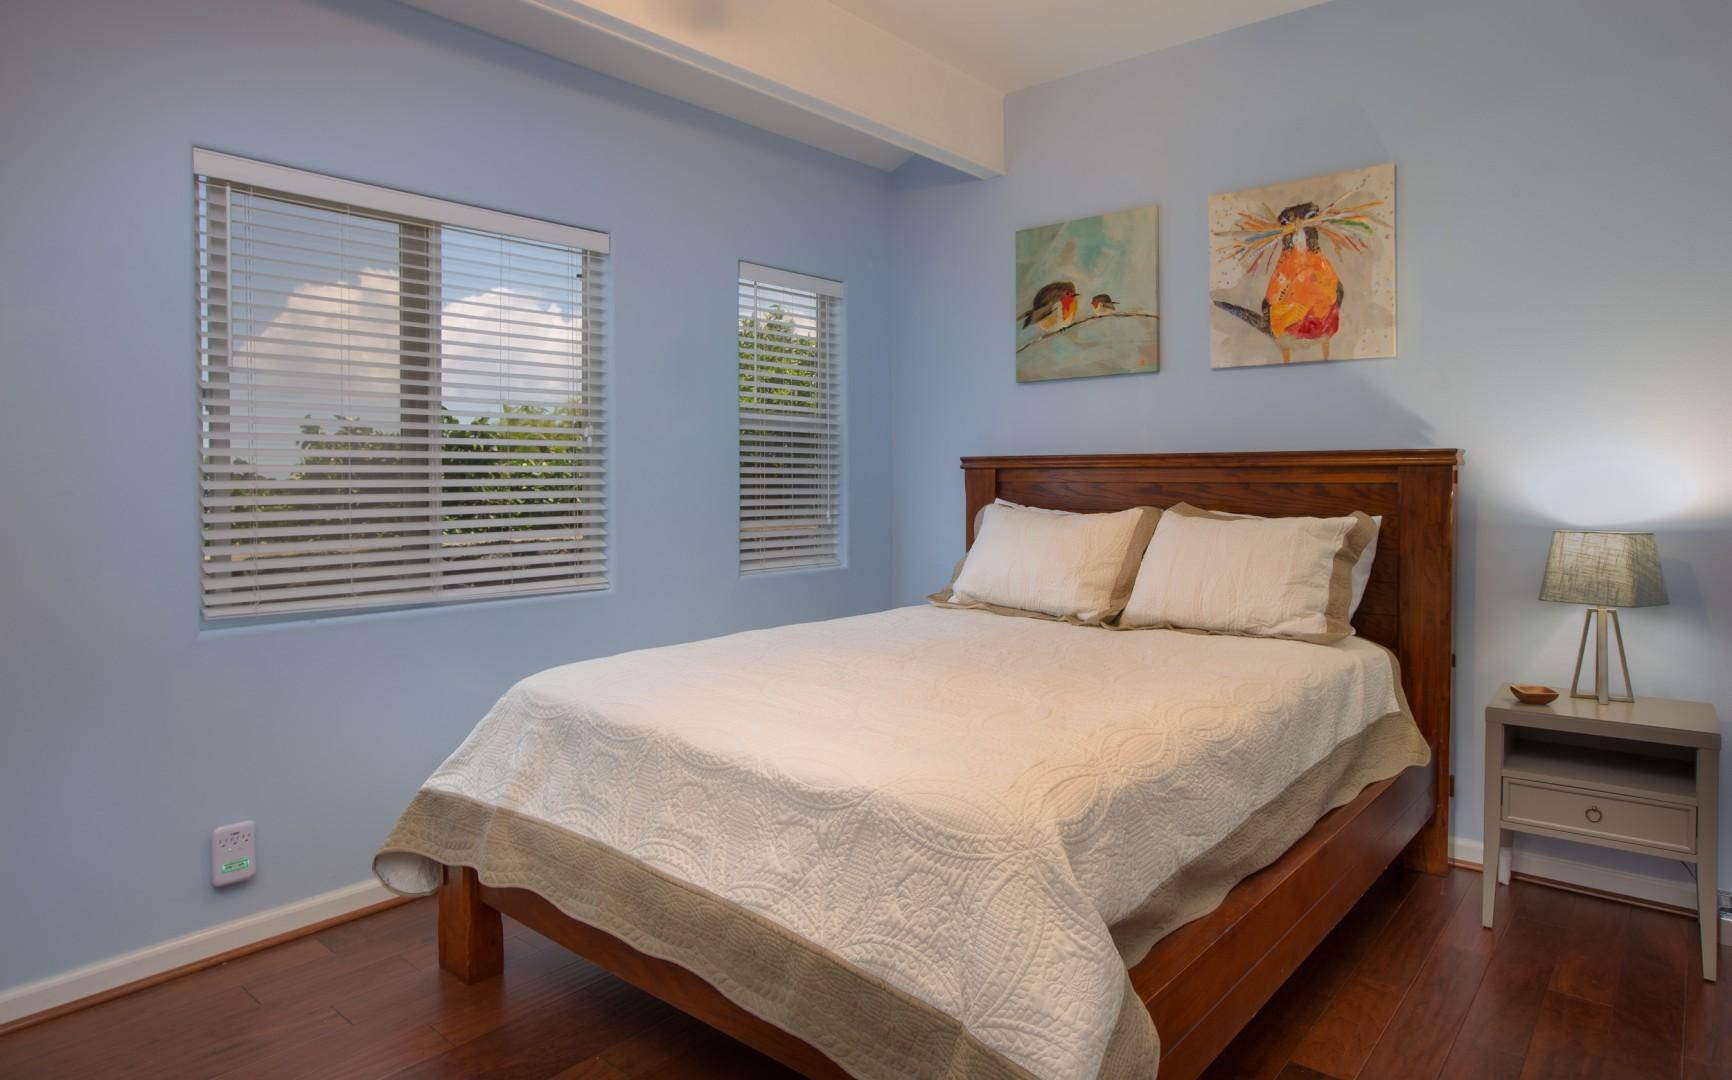 Third bedroom, equipped with queen bed, spacious closet, and 32